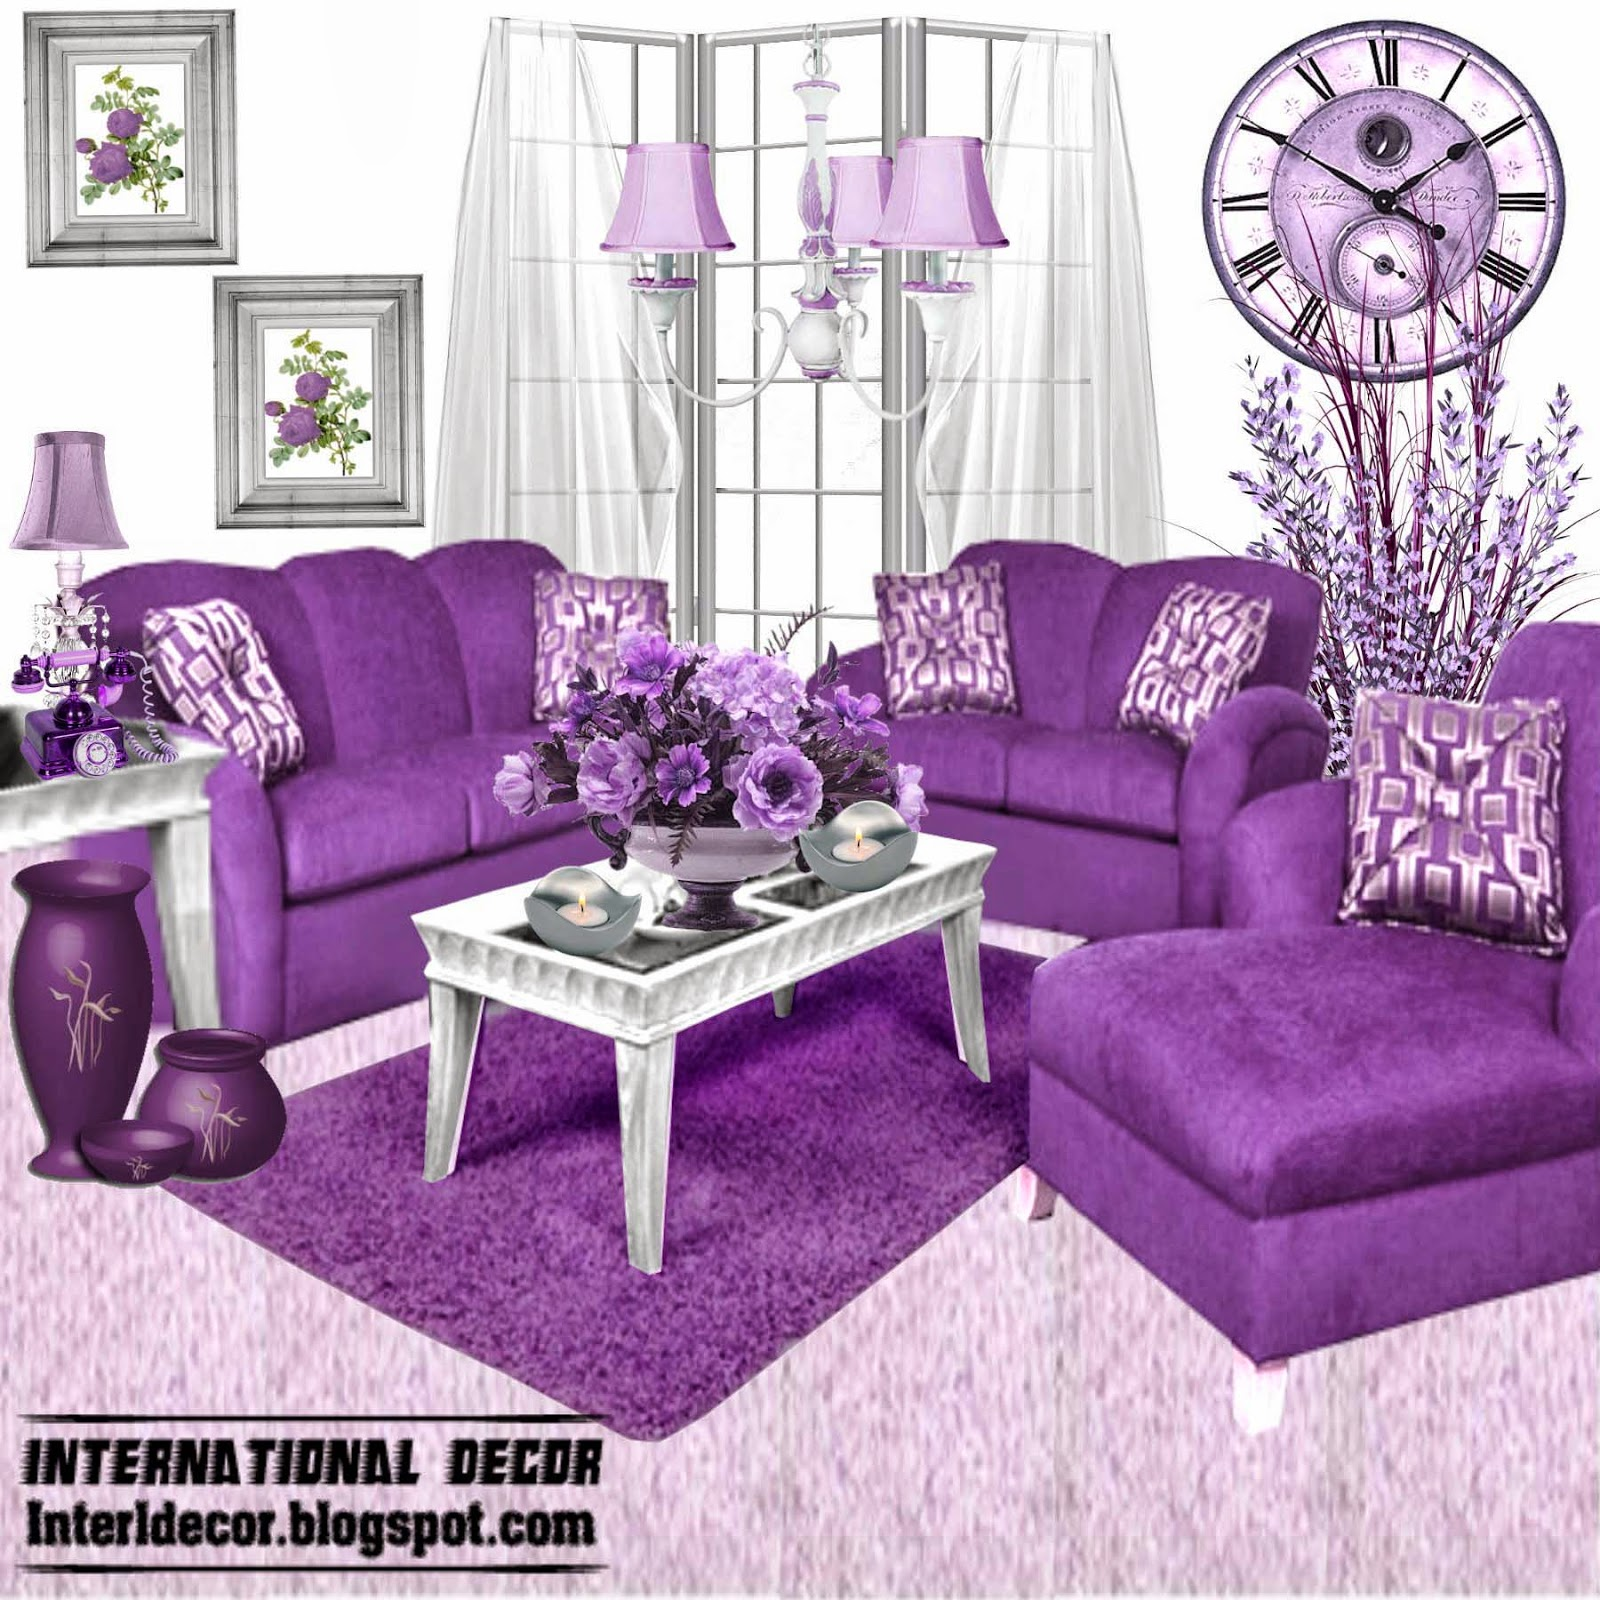 Purple furniture for the home pinterest purple for Living room chairs